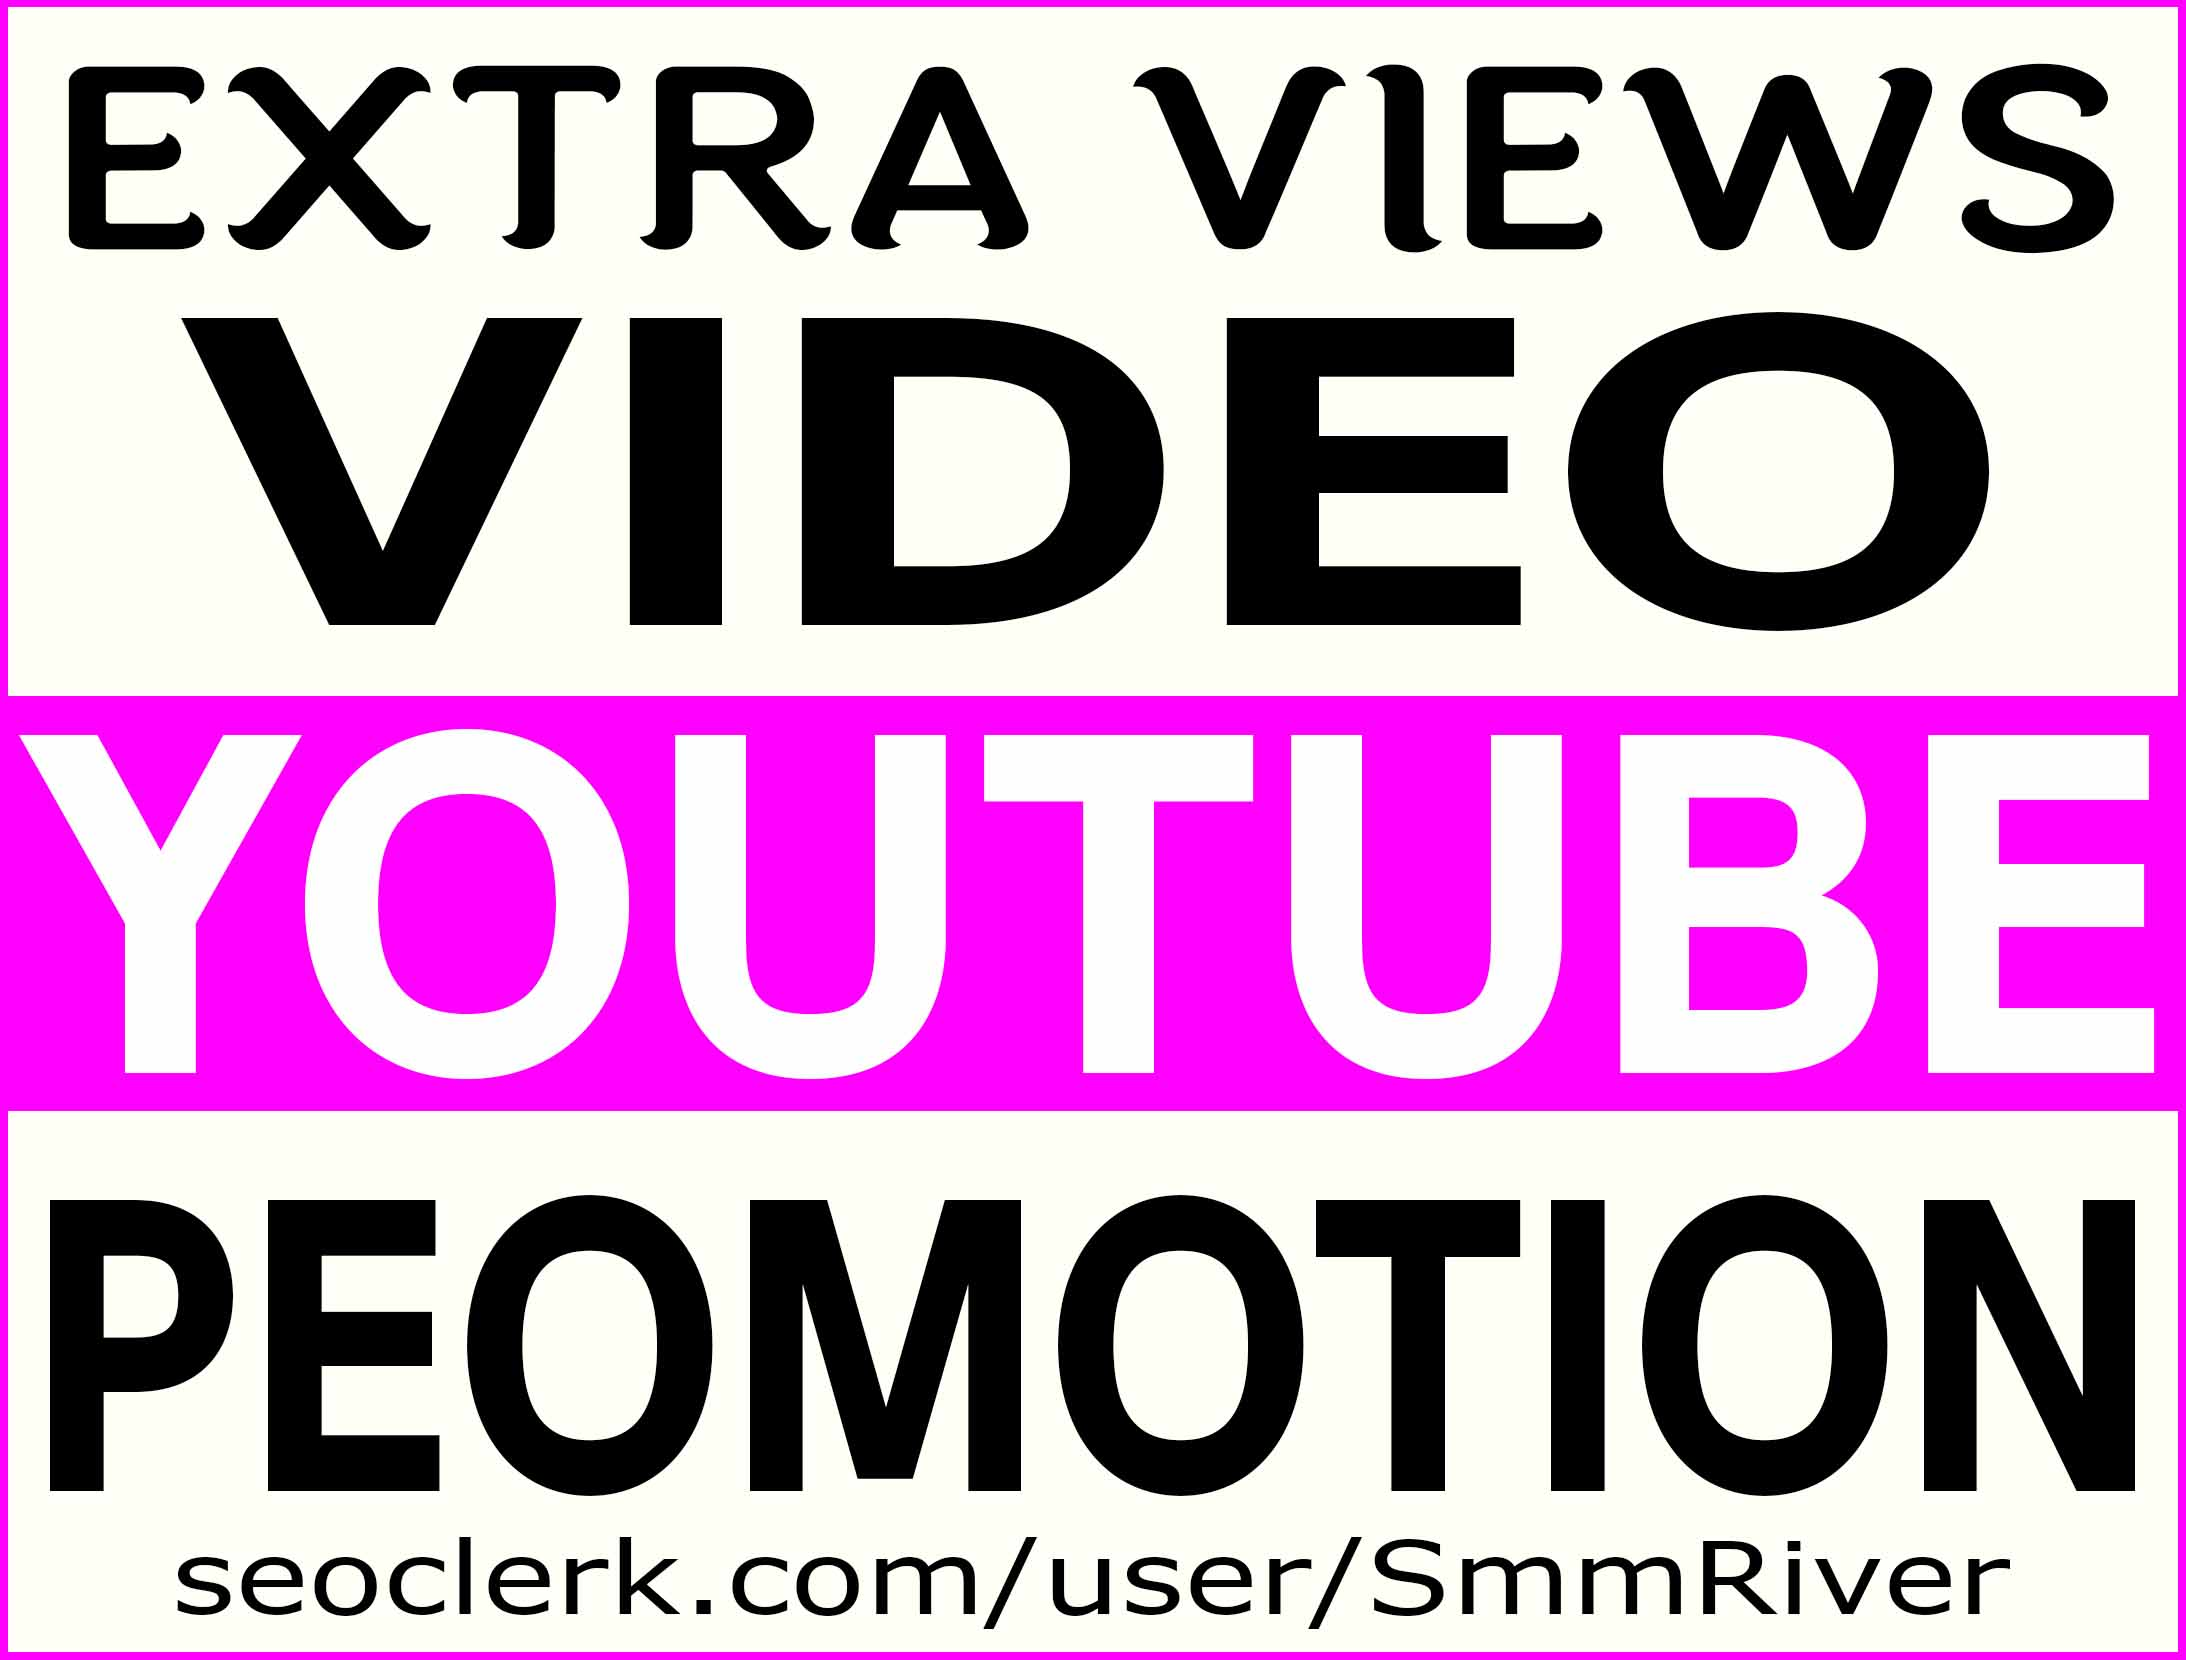 YOUTUBE VIDEO PROMOTION NON DROP & LIFE TIME GUARANTEED